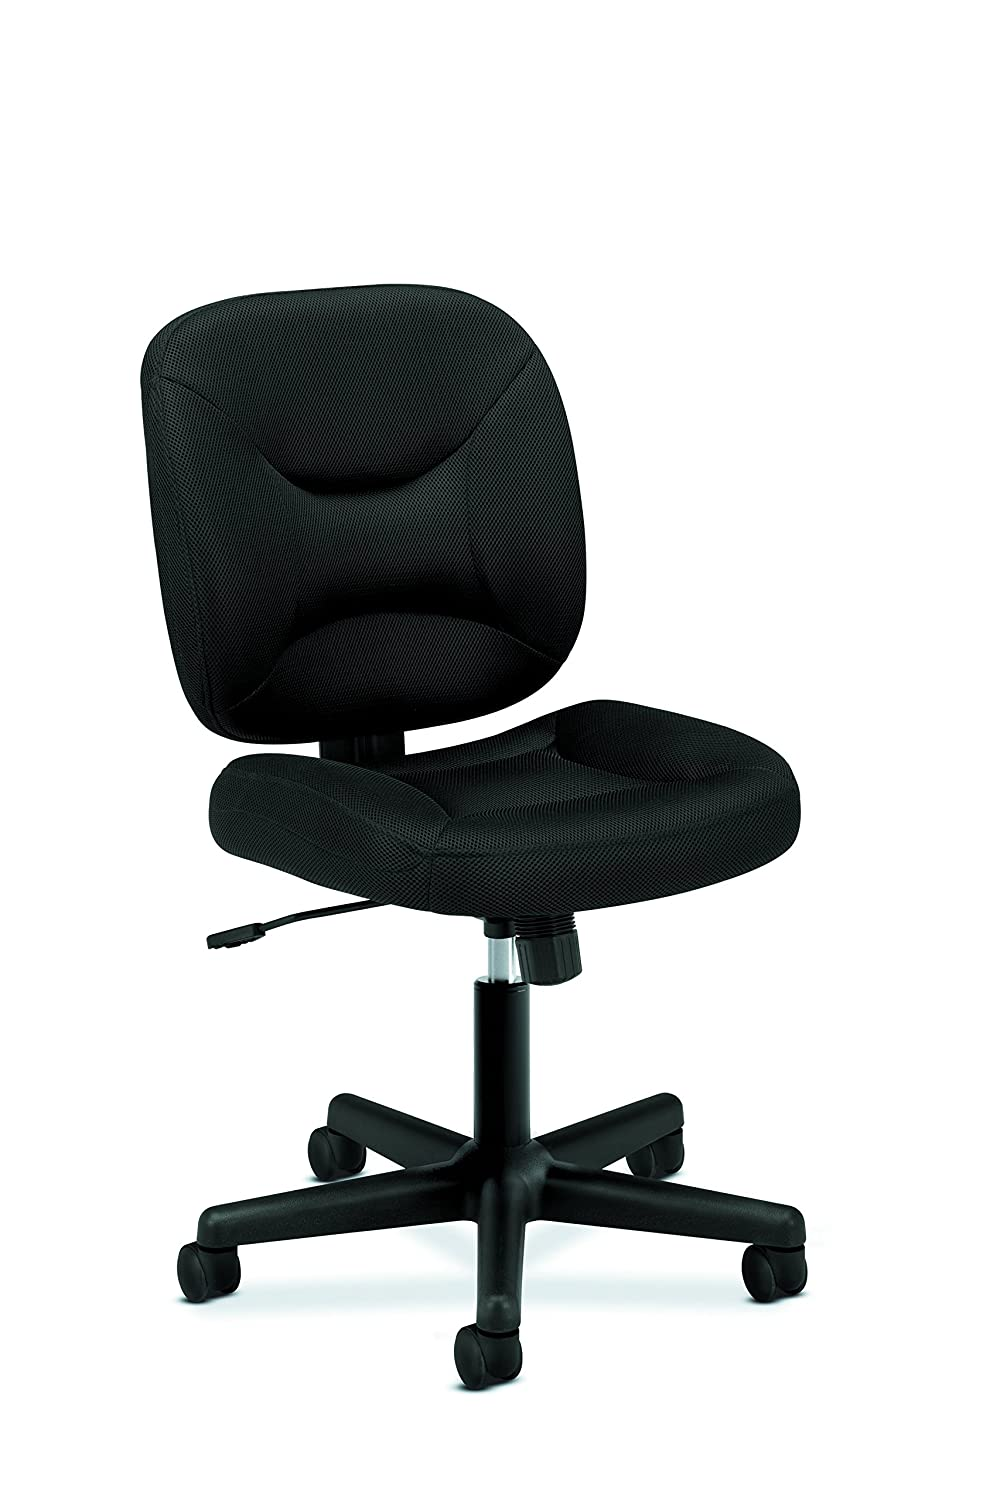 Basyx by HON VL210 Mesh Low-Back Task Chair - Black